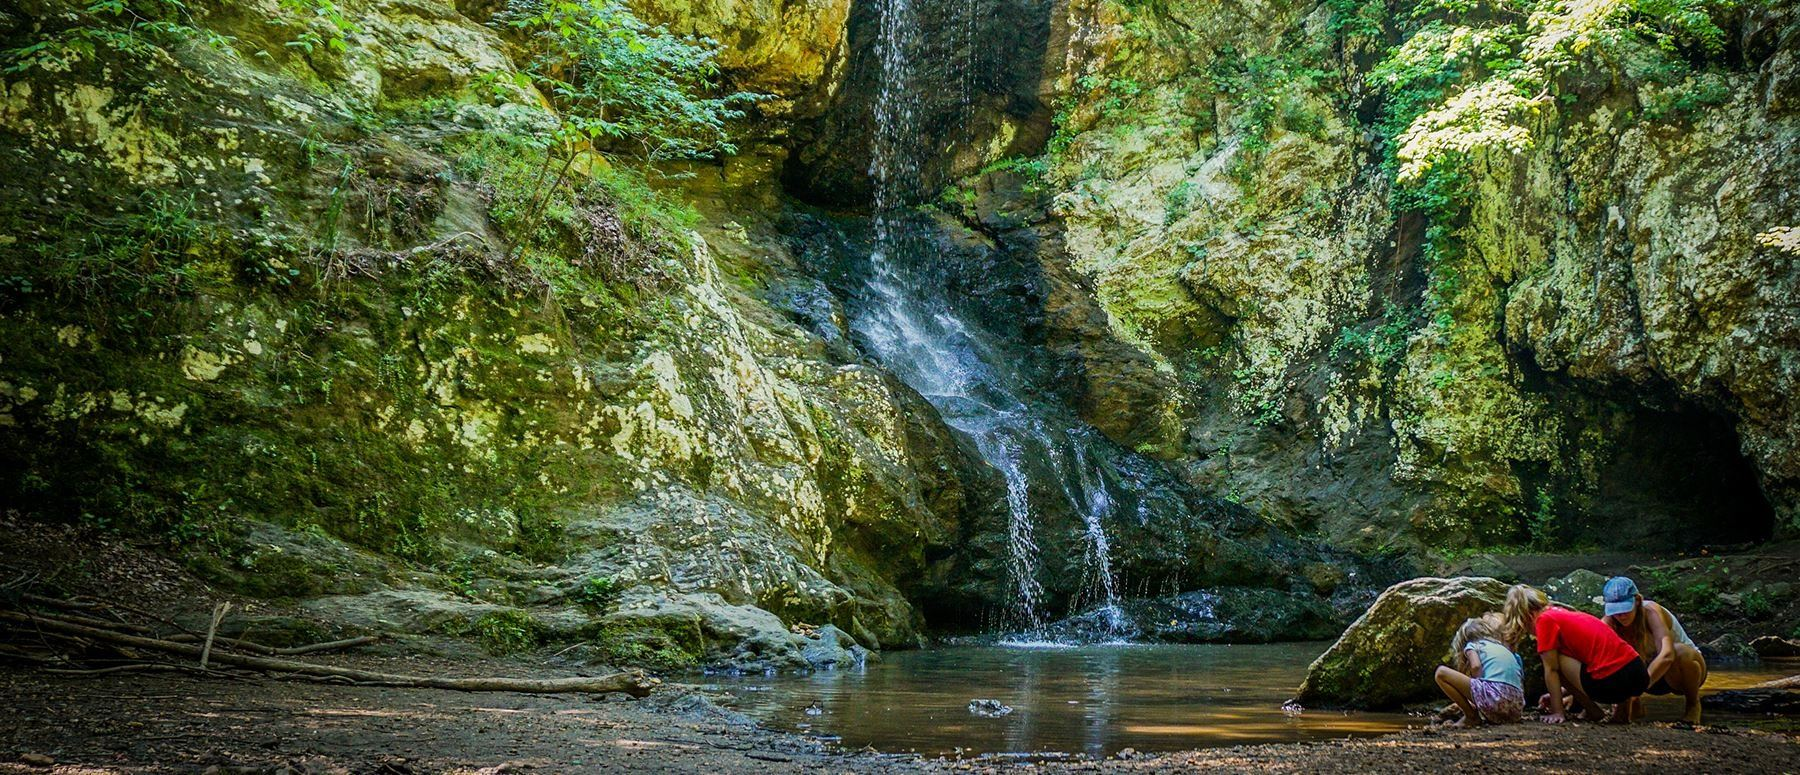 Image of a waterfall in Paulding County with a family playing in the water